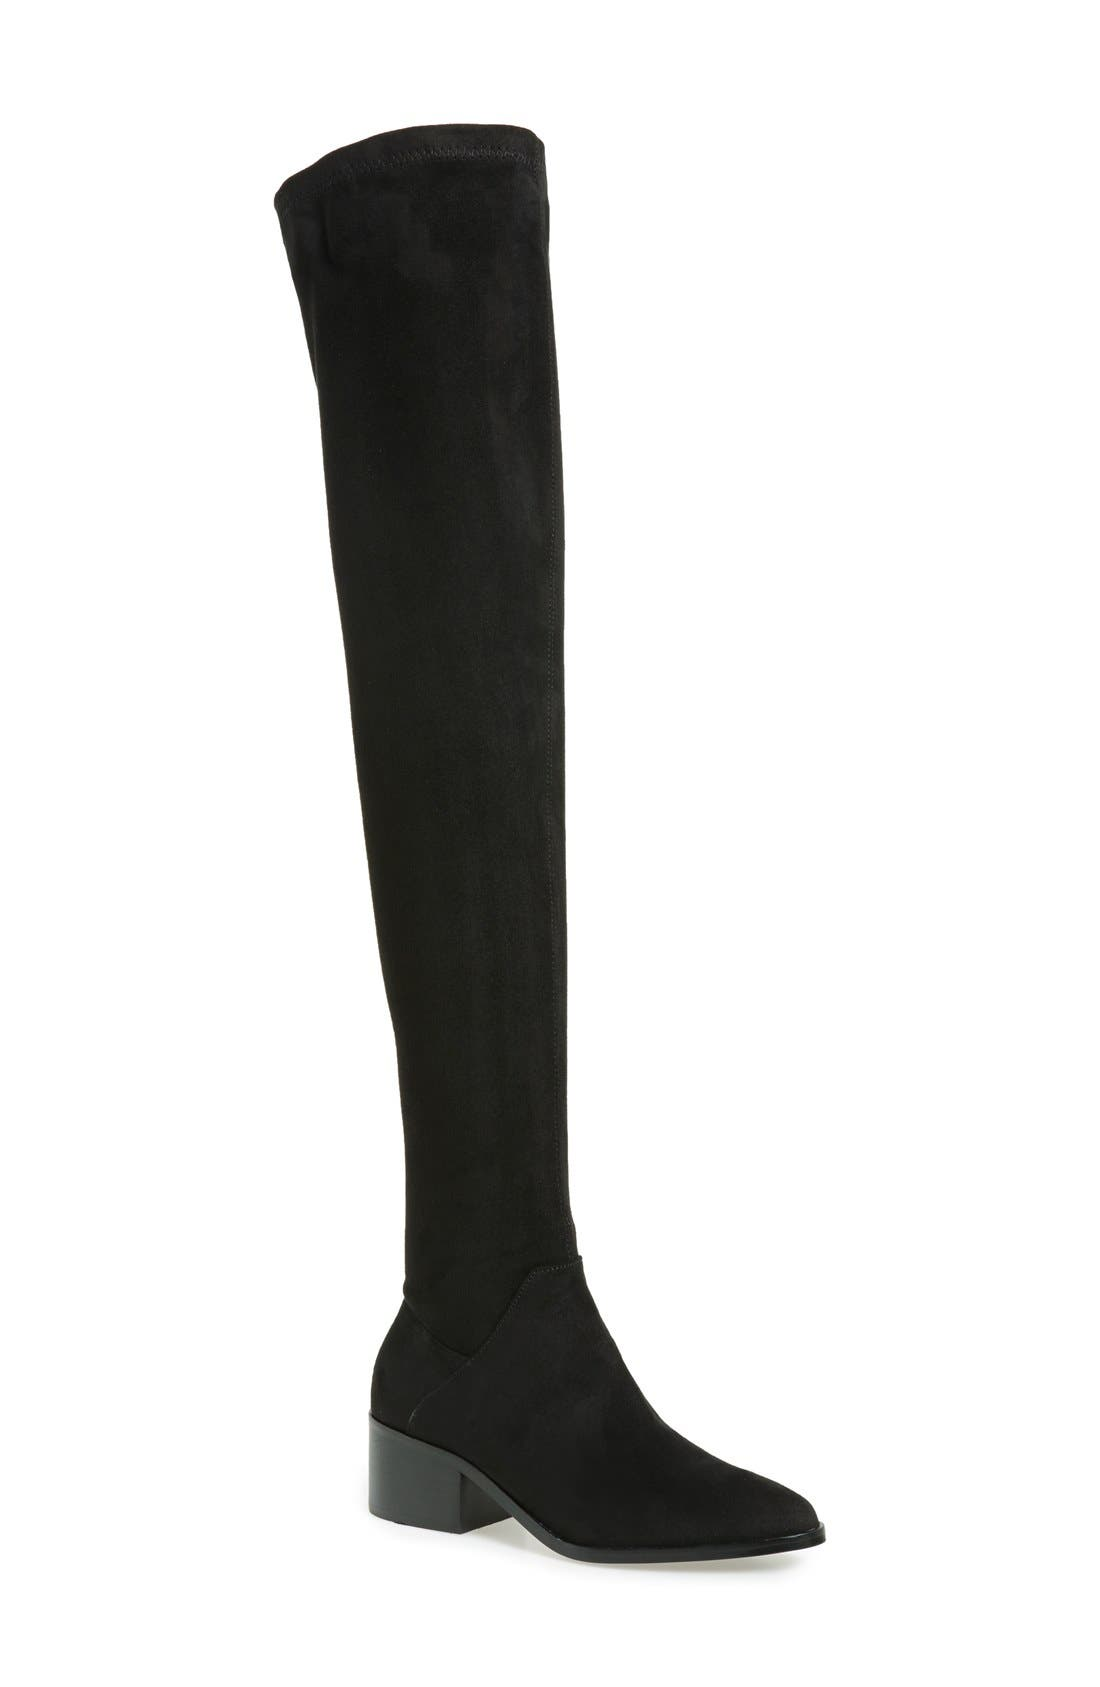 Alternate Image 1 Selected - Steve Madden Gabriana Stretch Over the Knee Boot (Women)